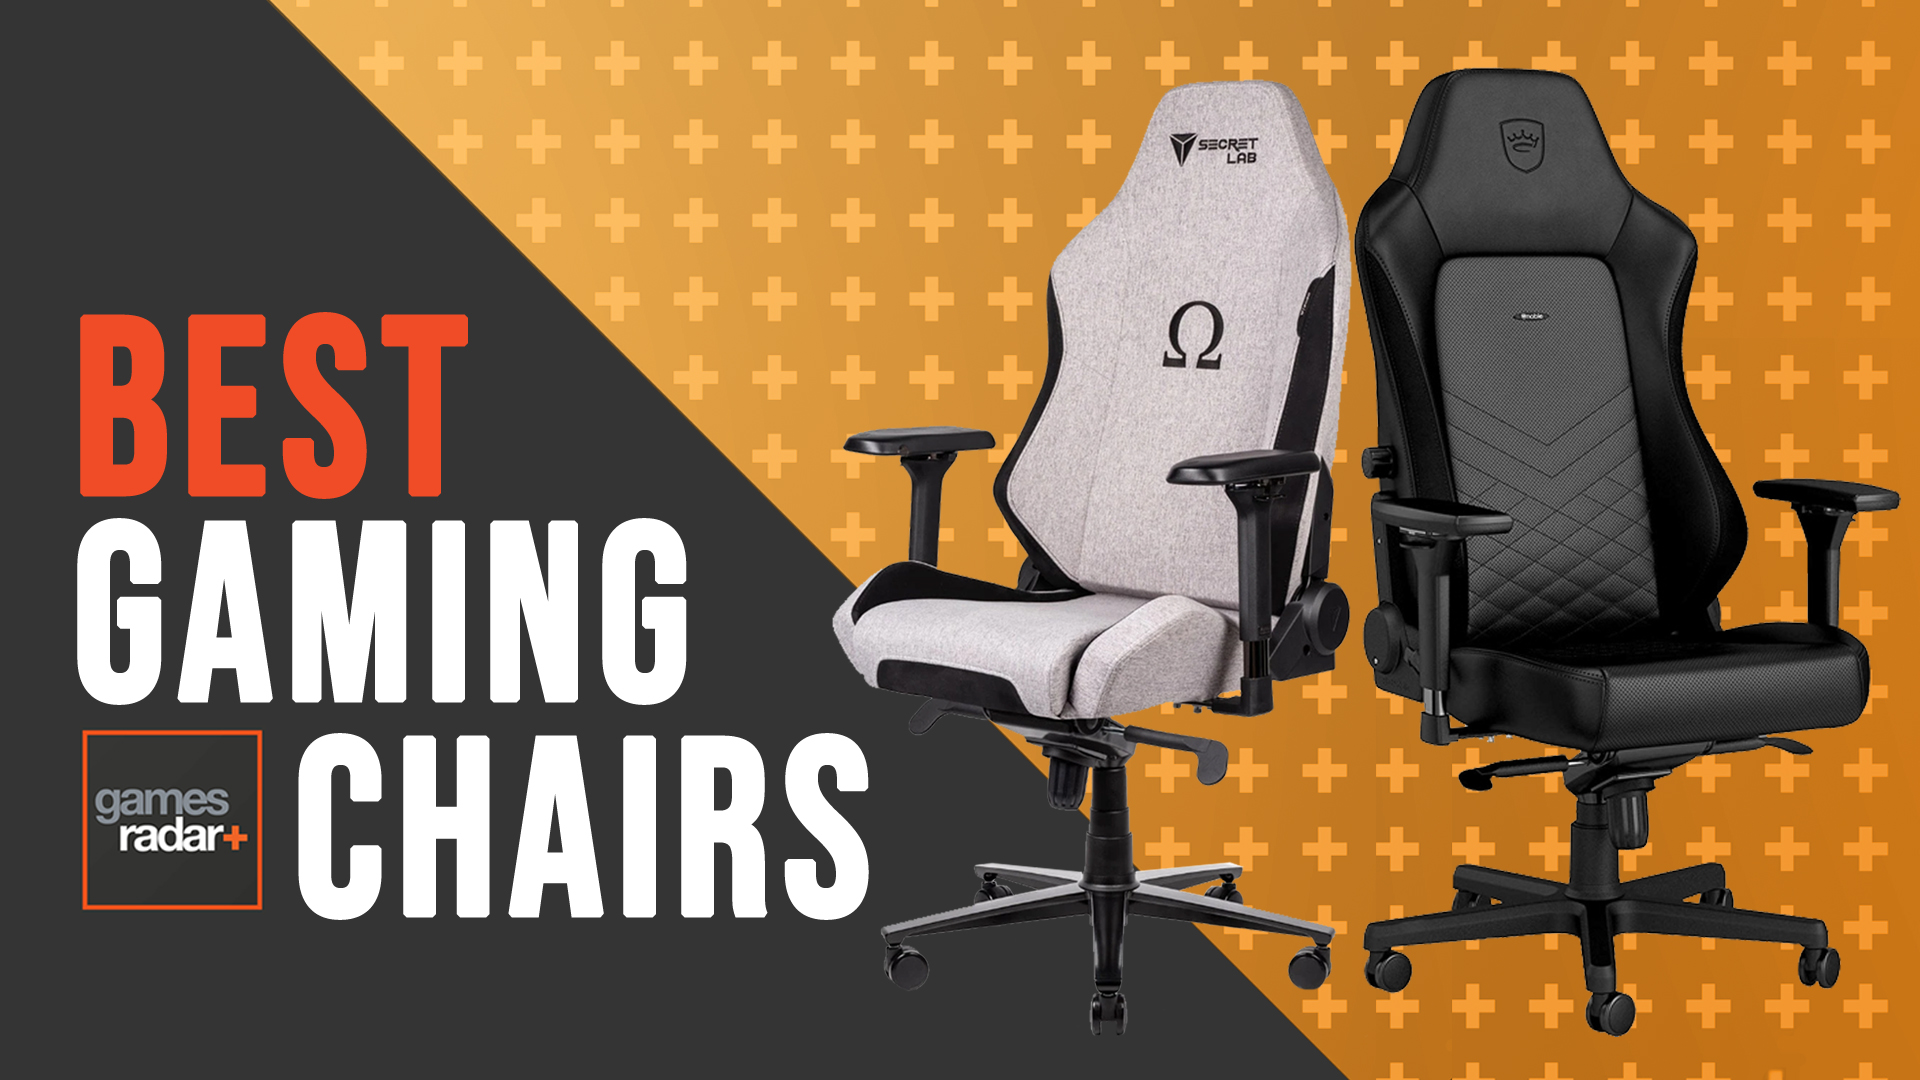 The Best Gaming Chairs In 2020 Play In Comfort And Style Gamesradar